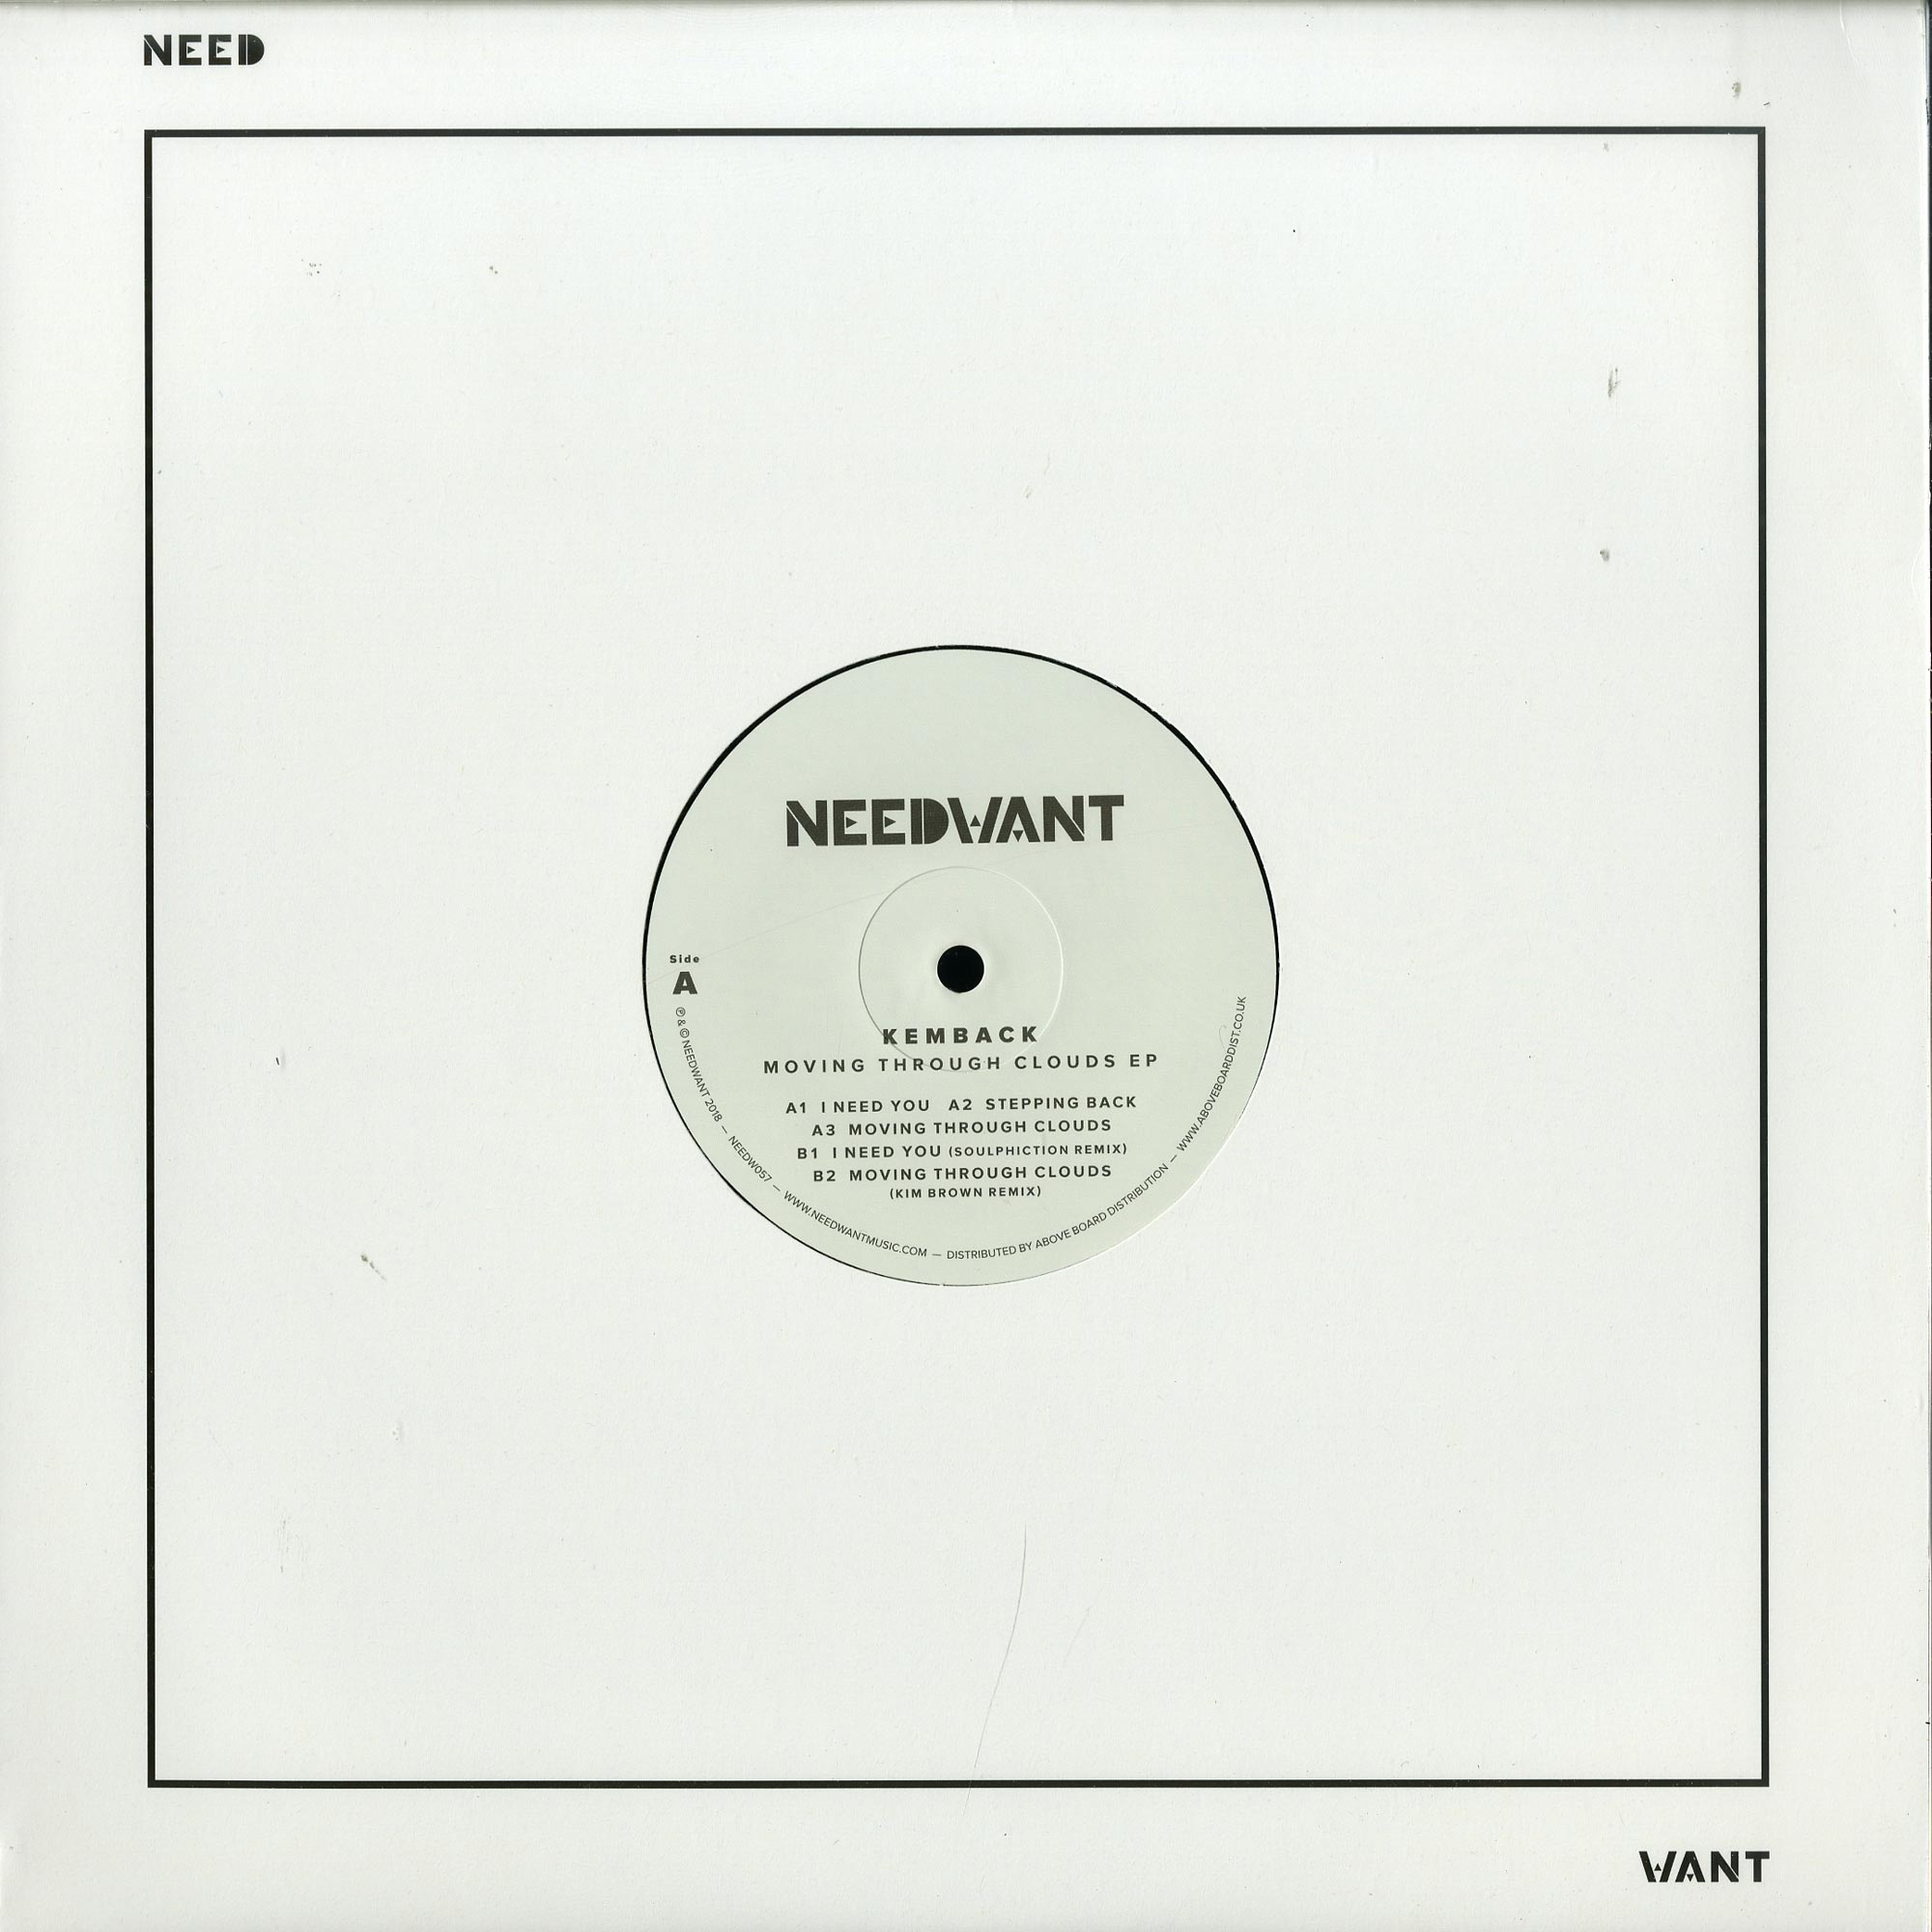 Kemback - MOVING THROUGH CLOUDS EP